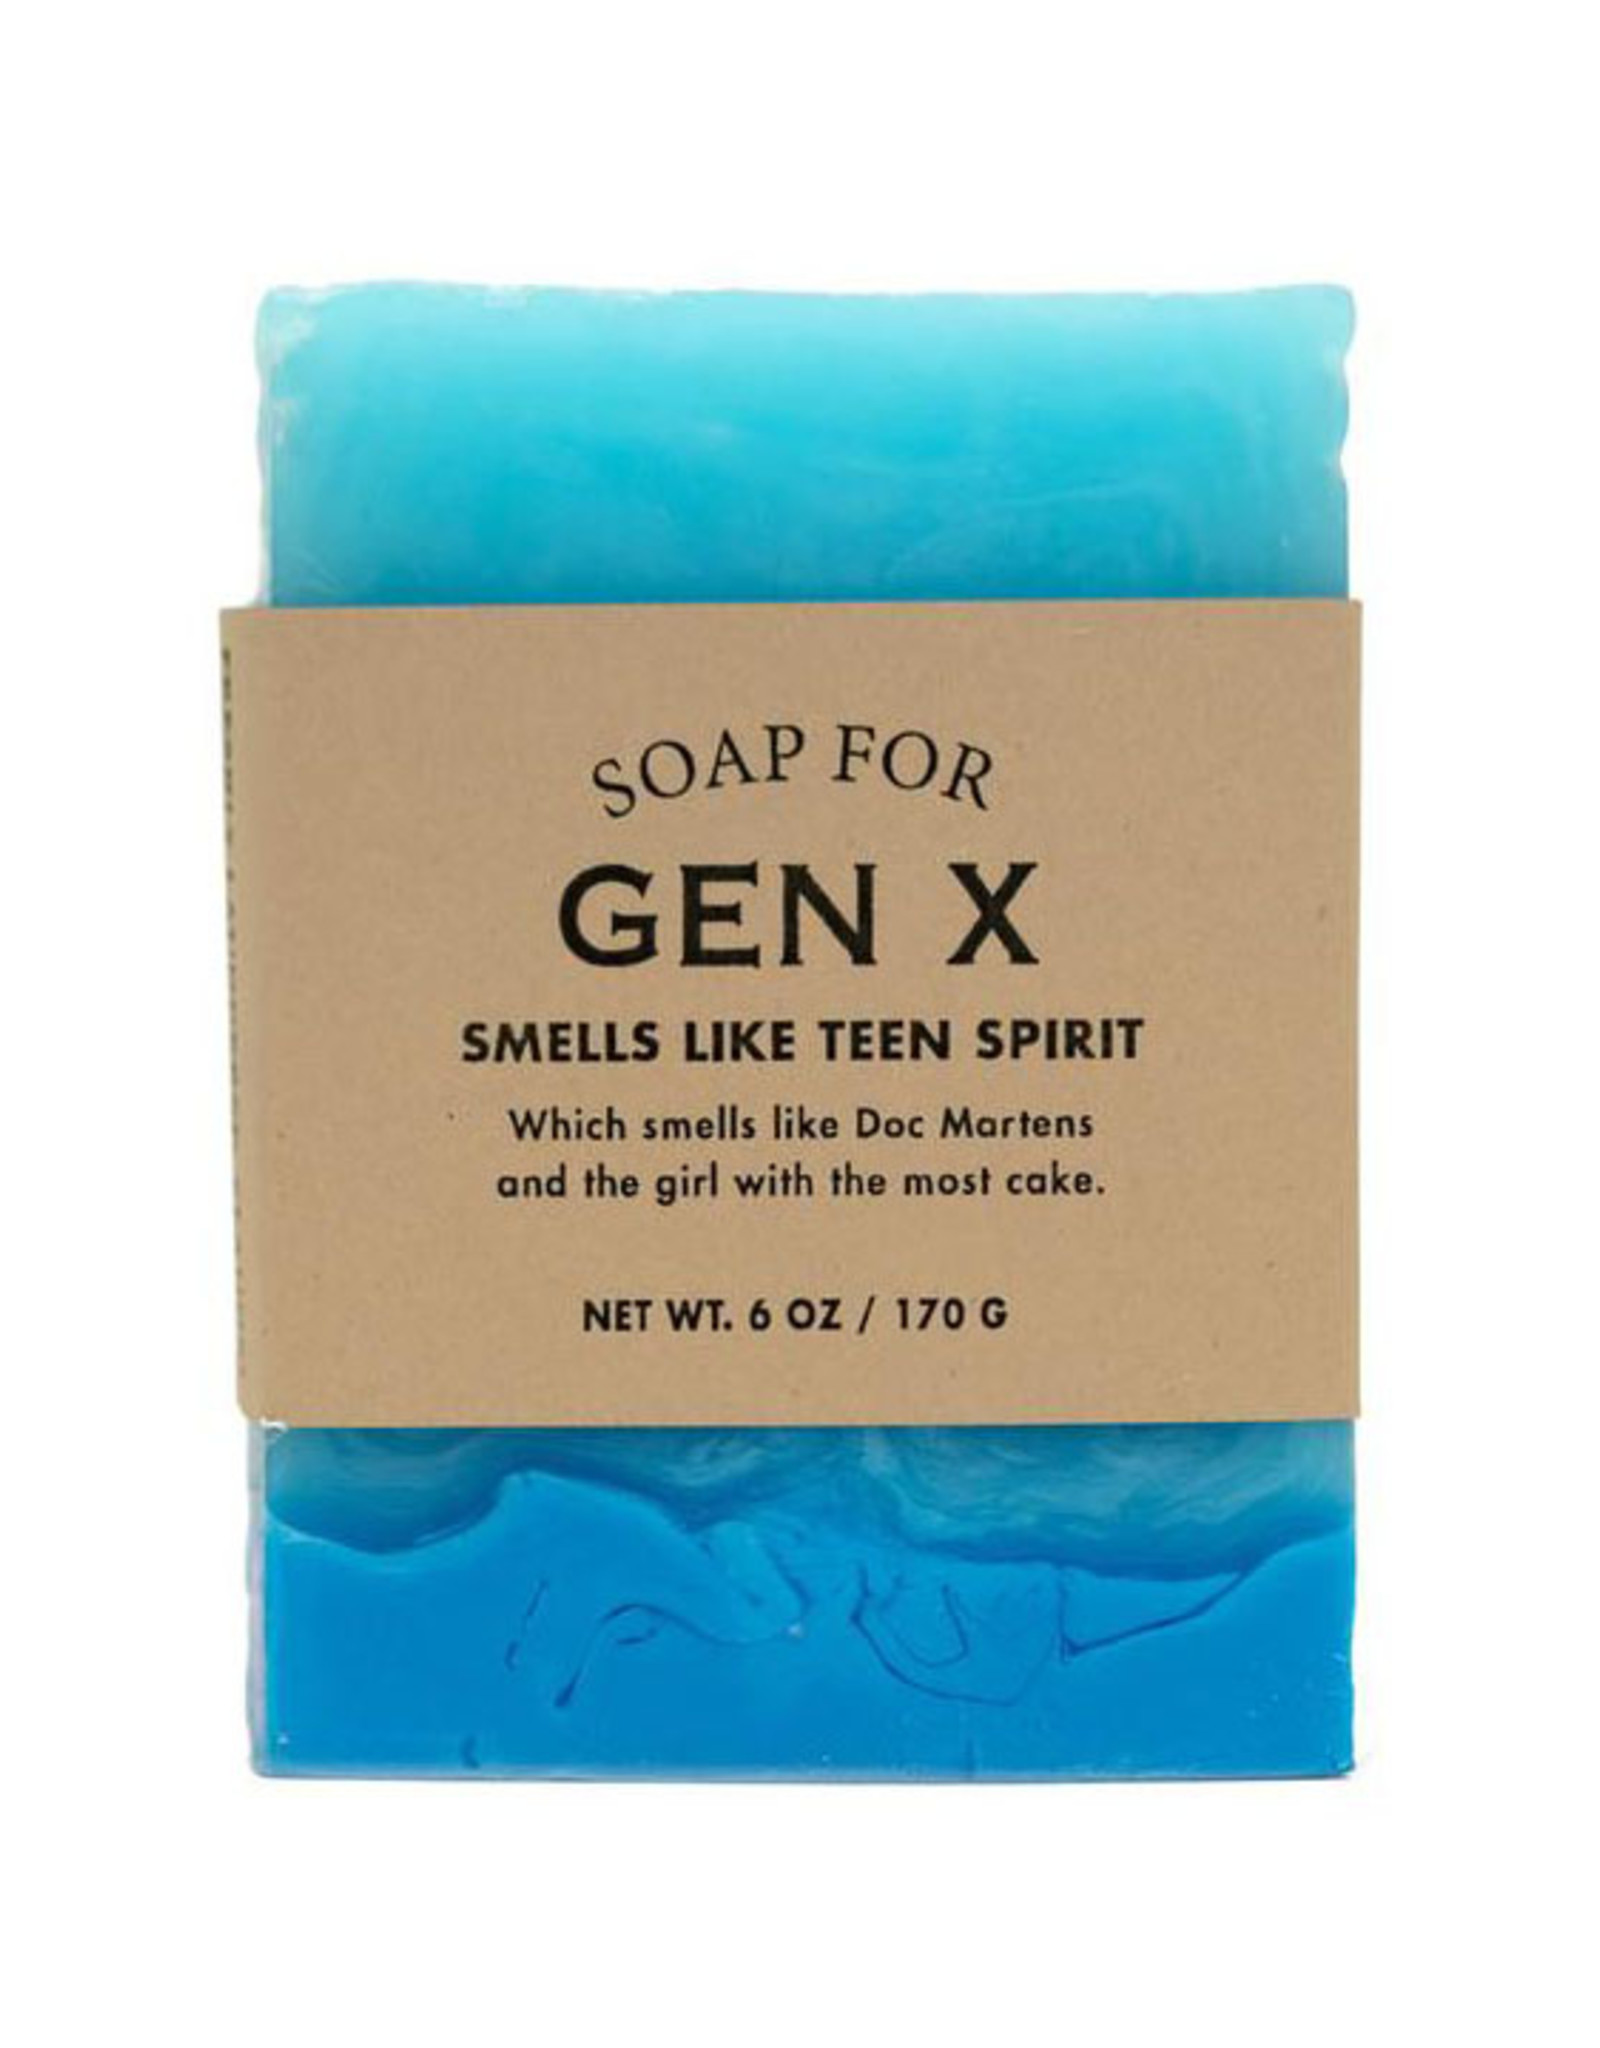 A Soap for Gen X